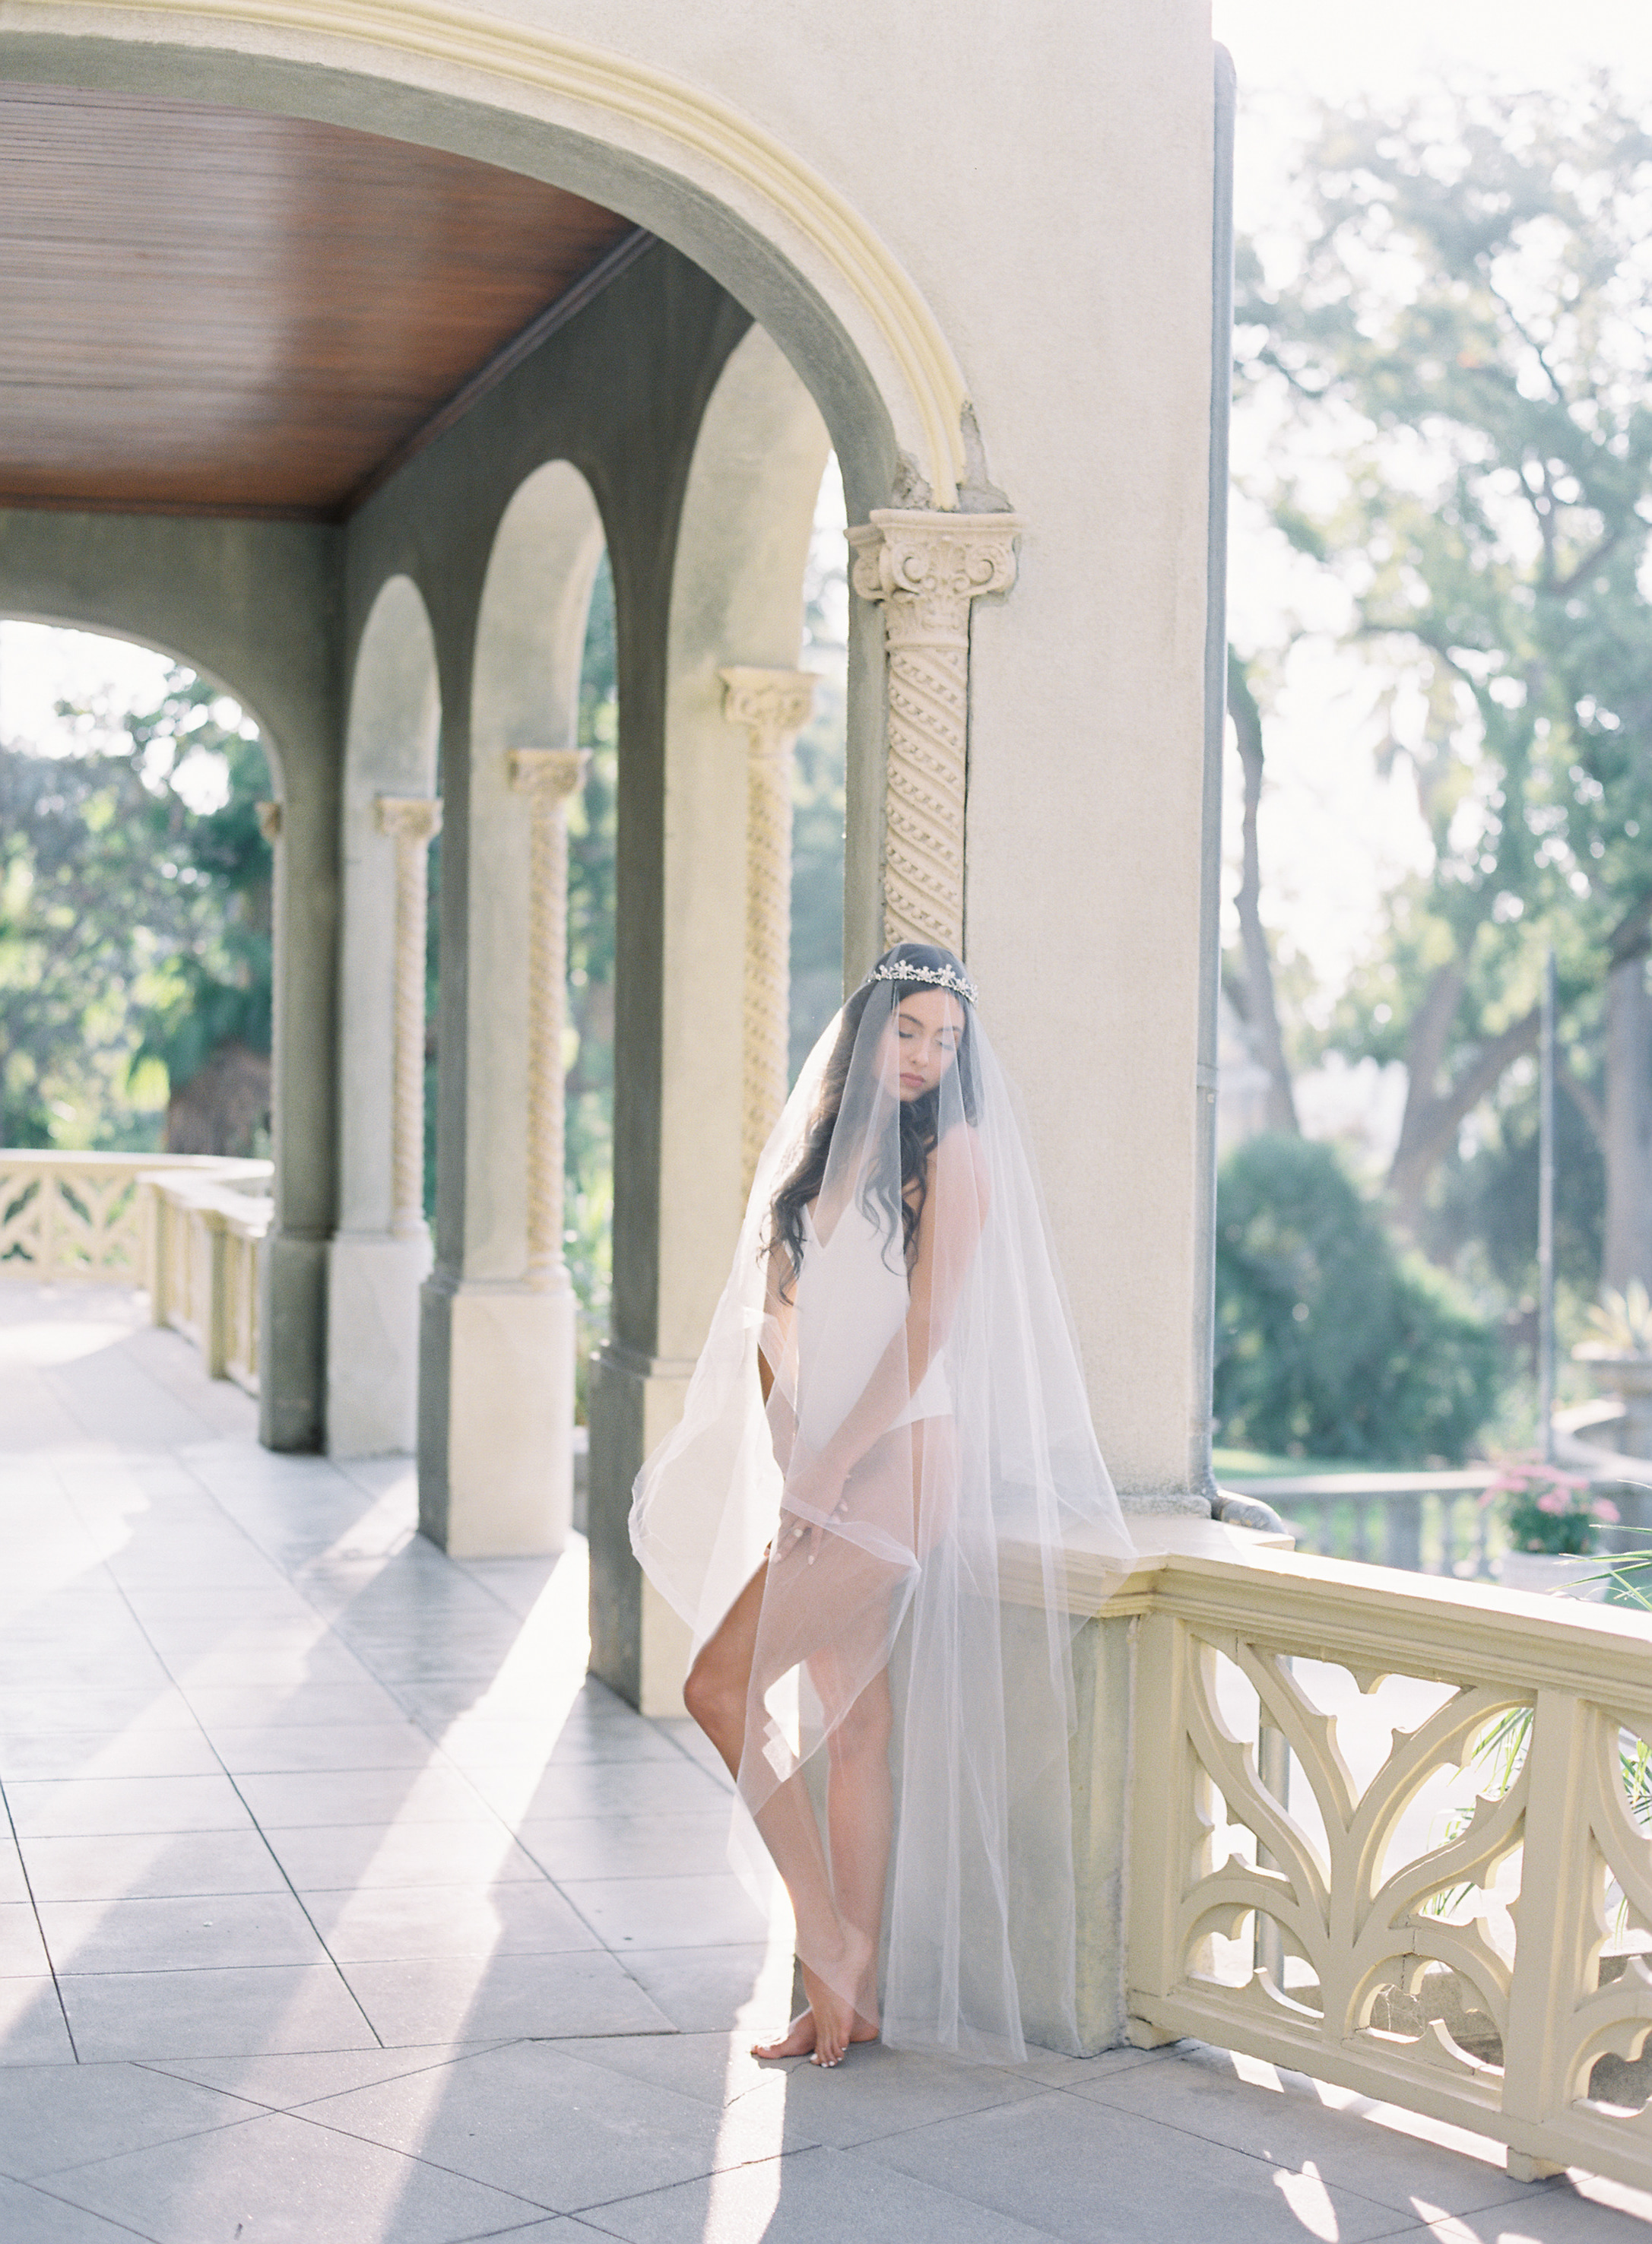 www.santabarbarawedding.com | Carrie King Photography | Kimberly Crest House & Gardens | Reyes Modeling | Besame Floral Events | Model Posing in Bride Undergarments